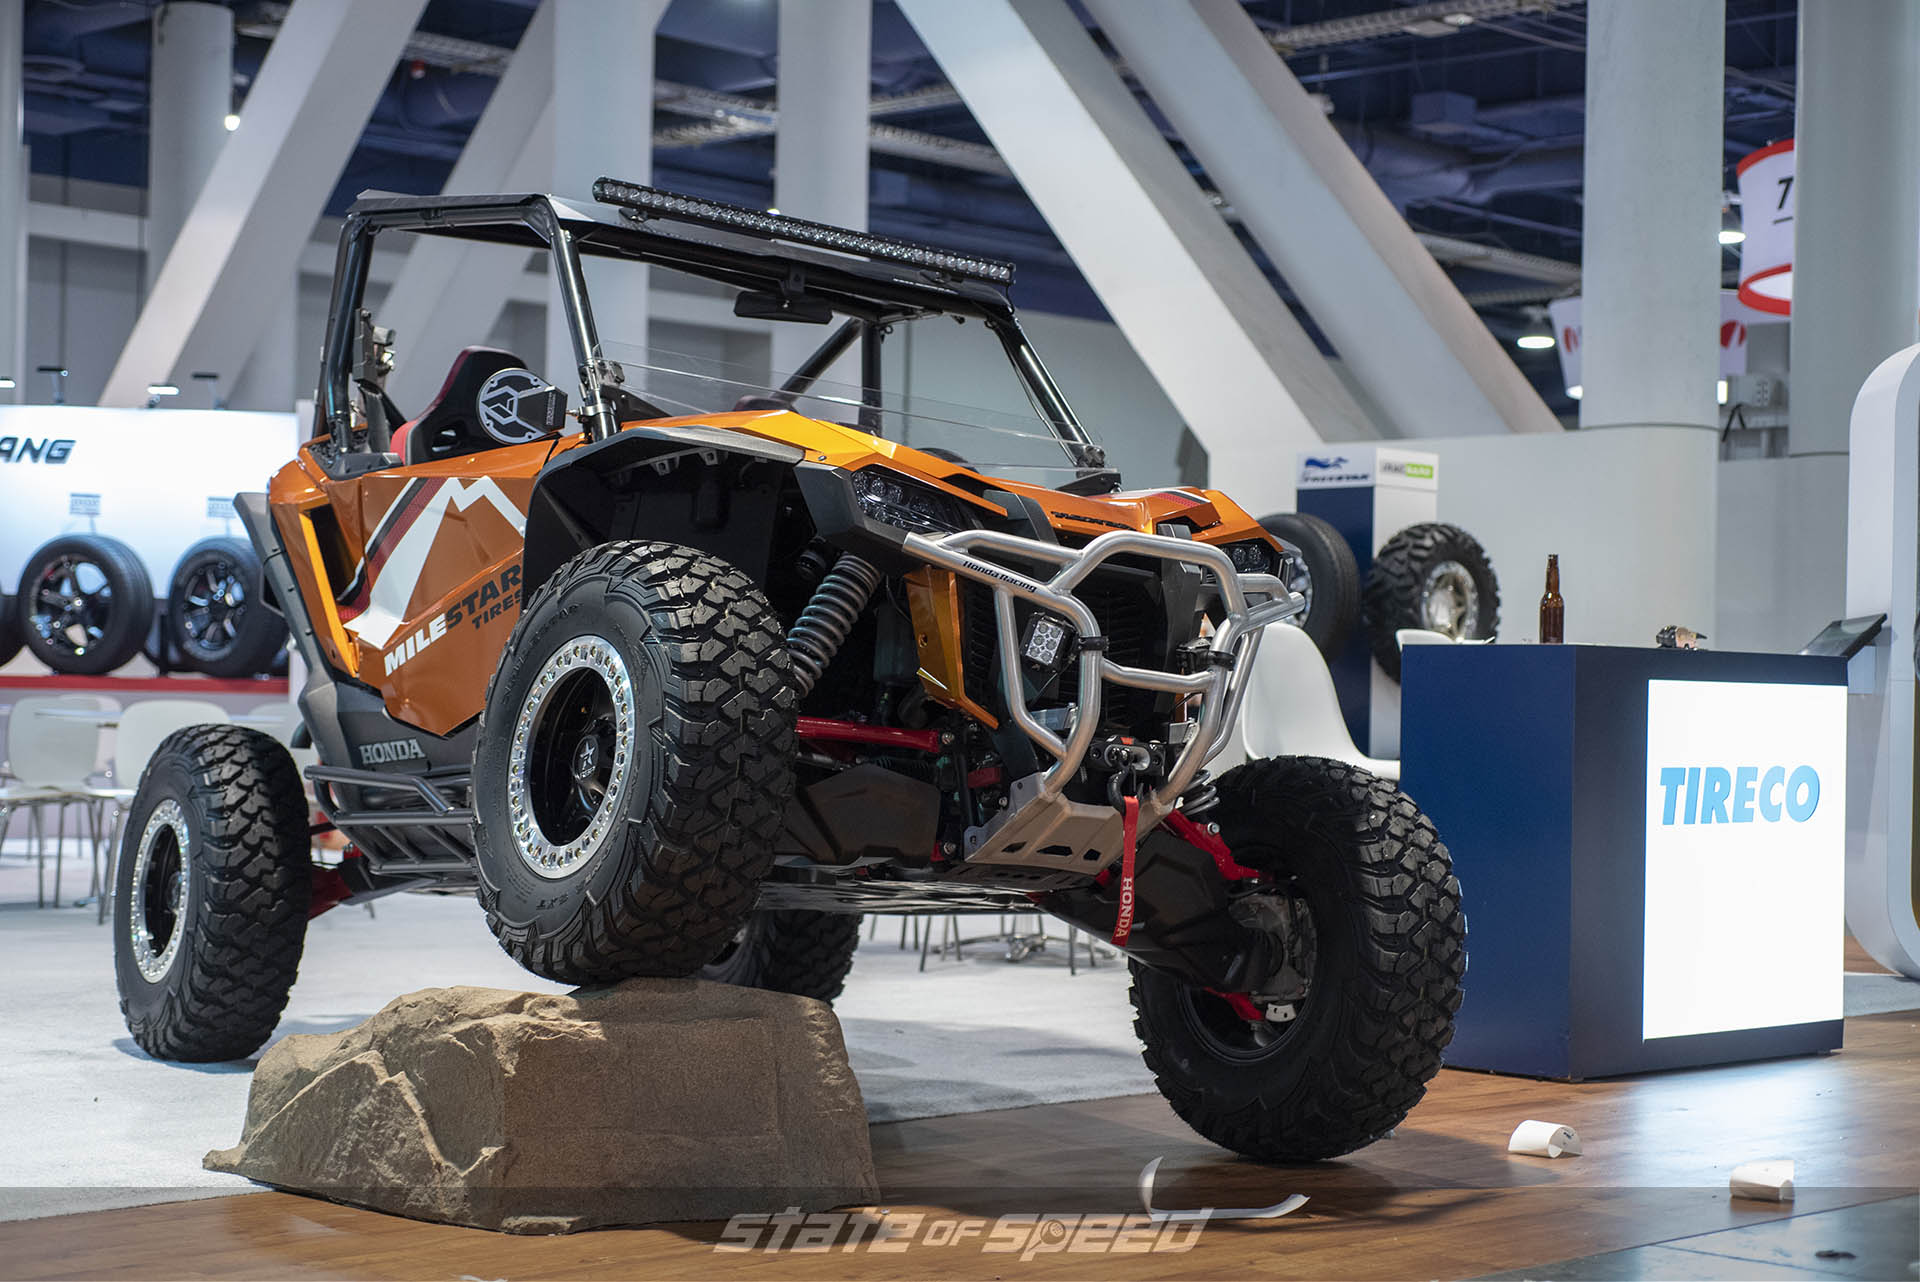 Milestar booth showing off the new SXT tire on a UTV at SEMA 2019